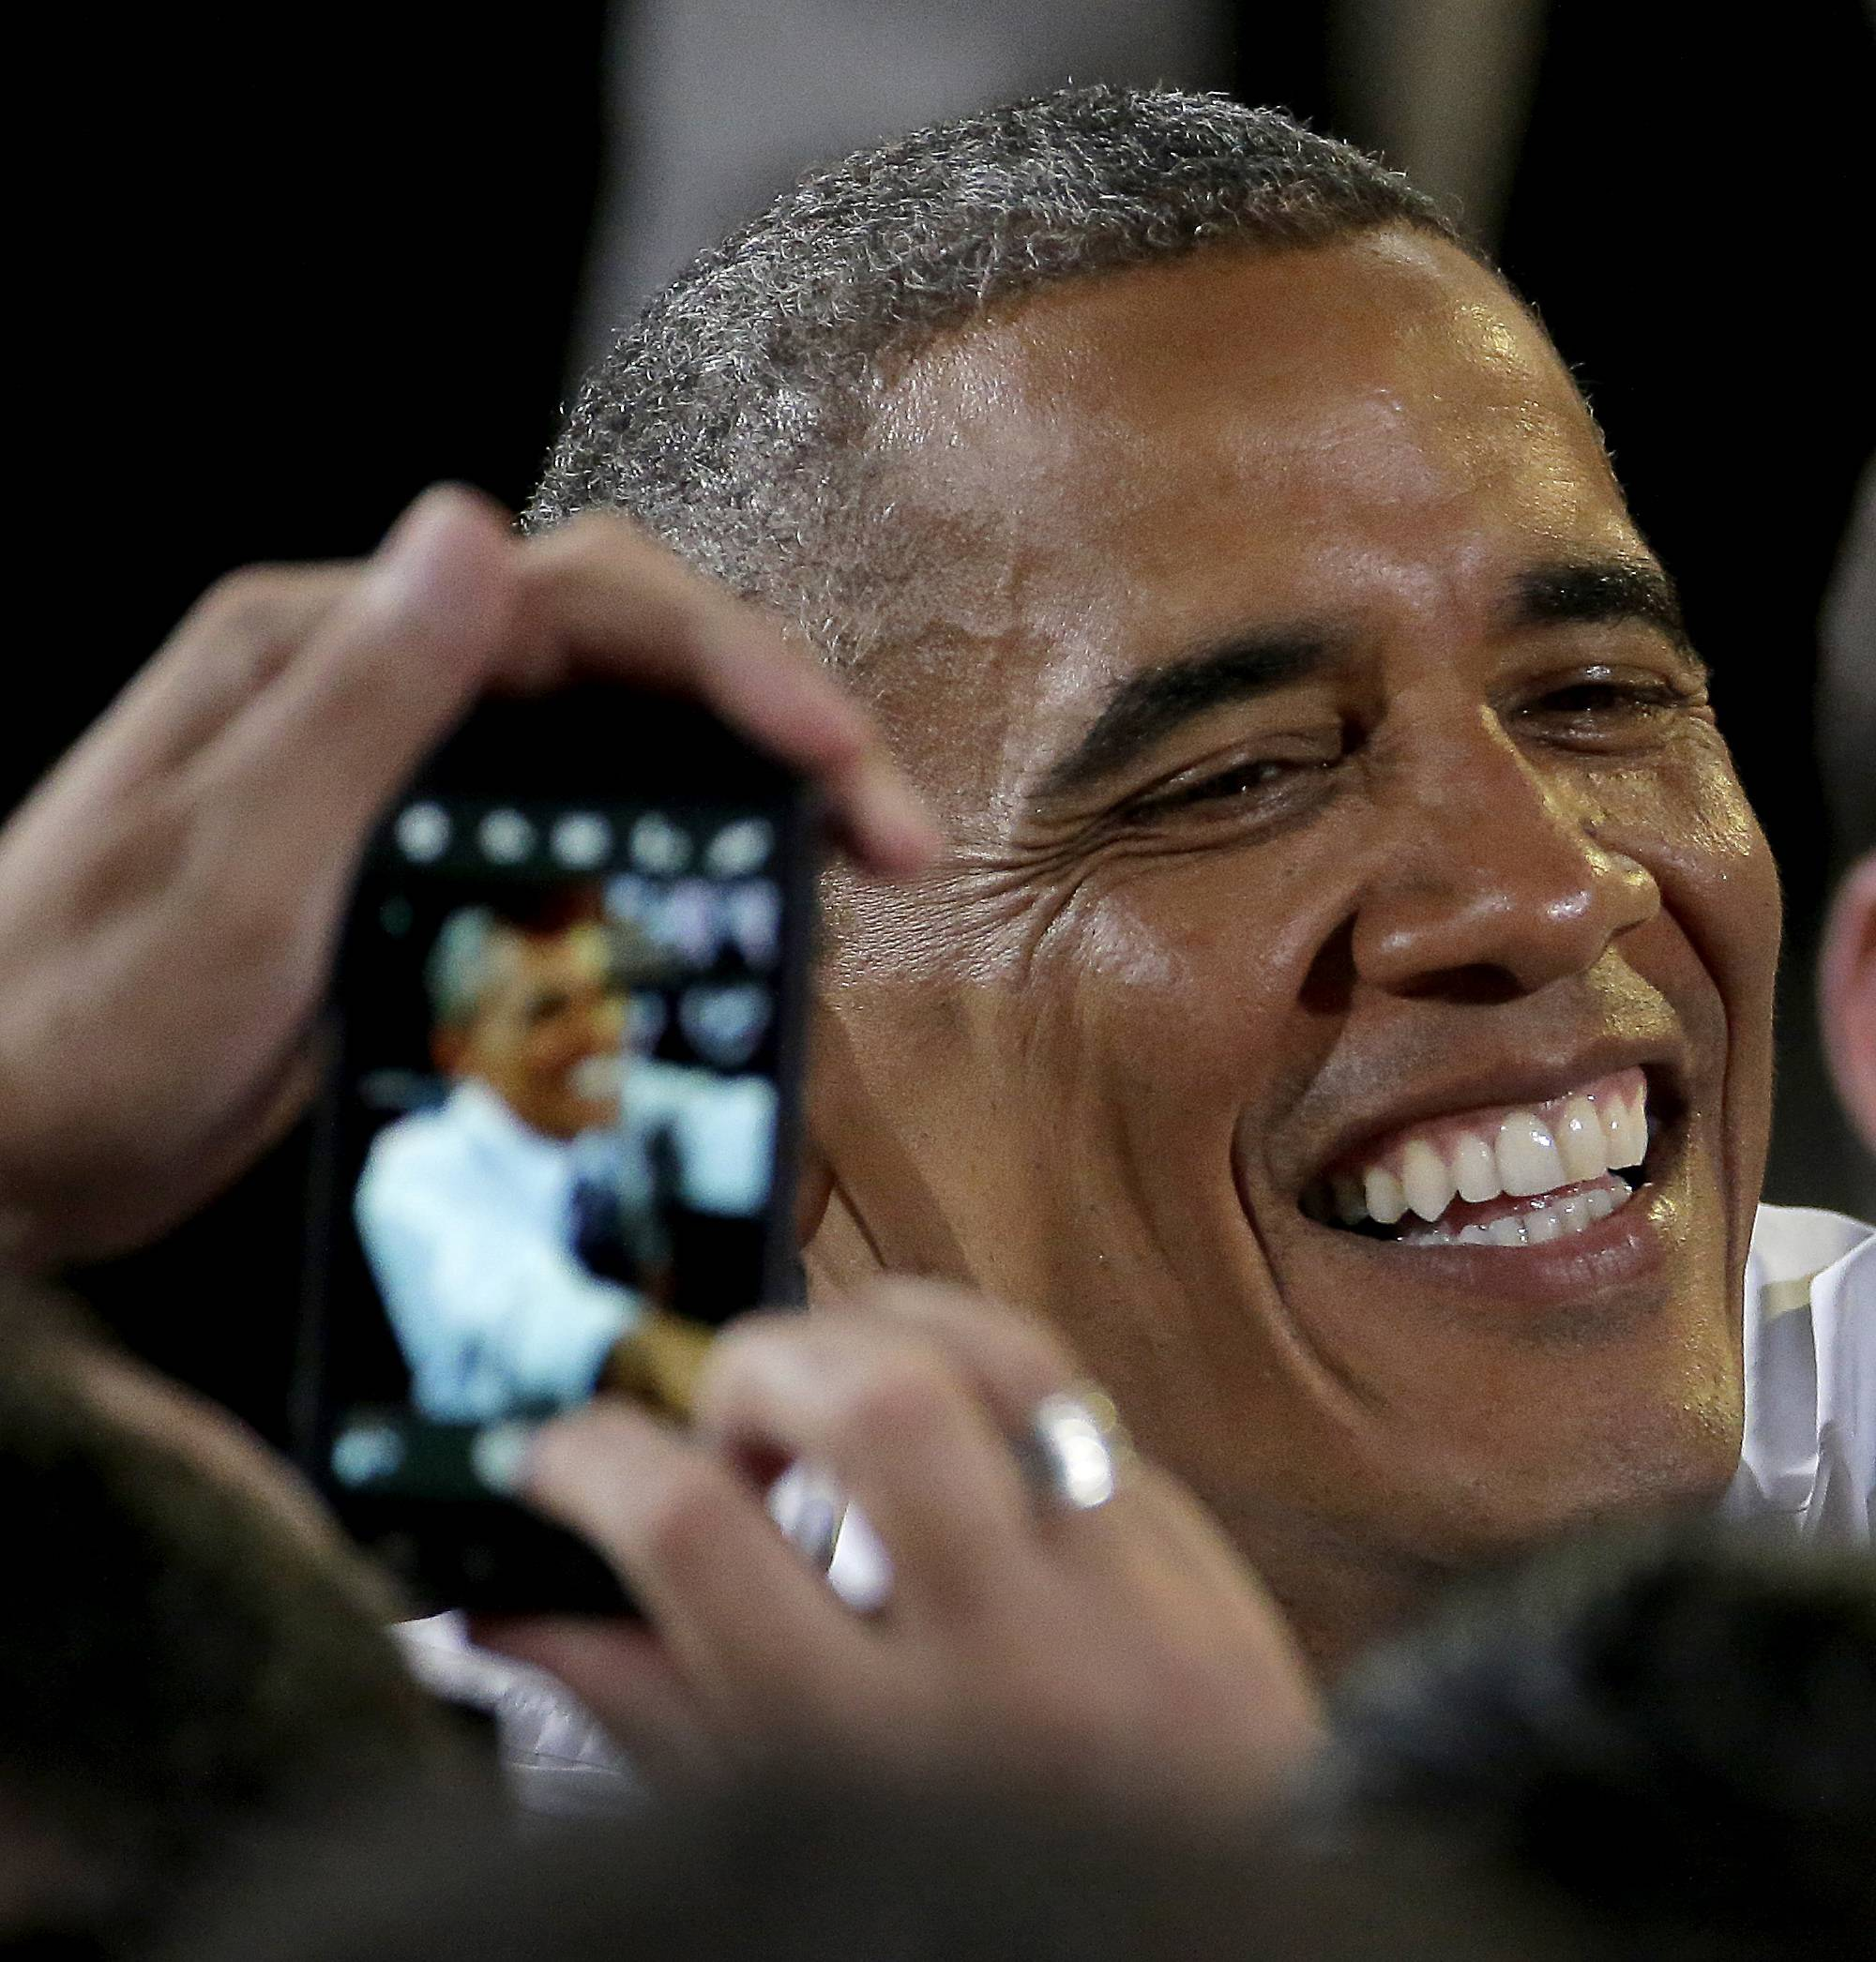 A guest uses a cellphone Wednesday to photograph President Barack Obama as greets the crowd after speaking about the economy at the Uptown Theater in Kansas City, Mo. On Friday, Obama signed a bill into law making it legal once again to unlock a cellphone without permission from your wireless provider.